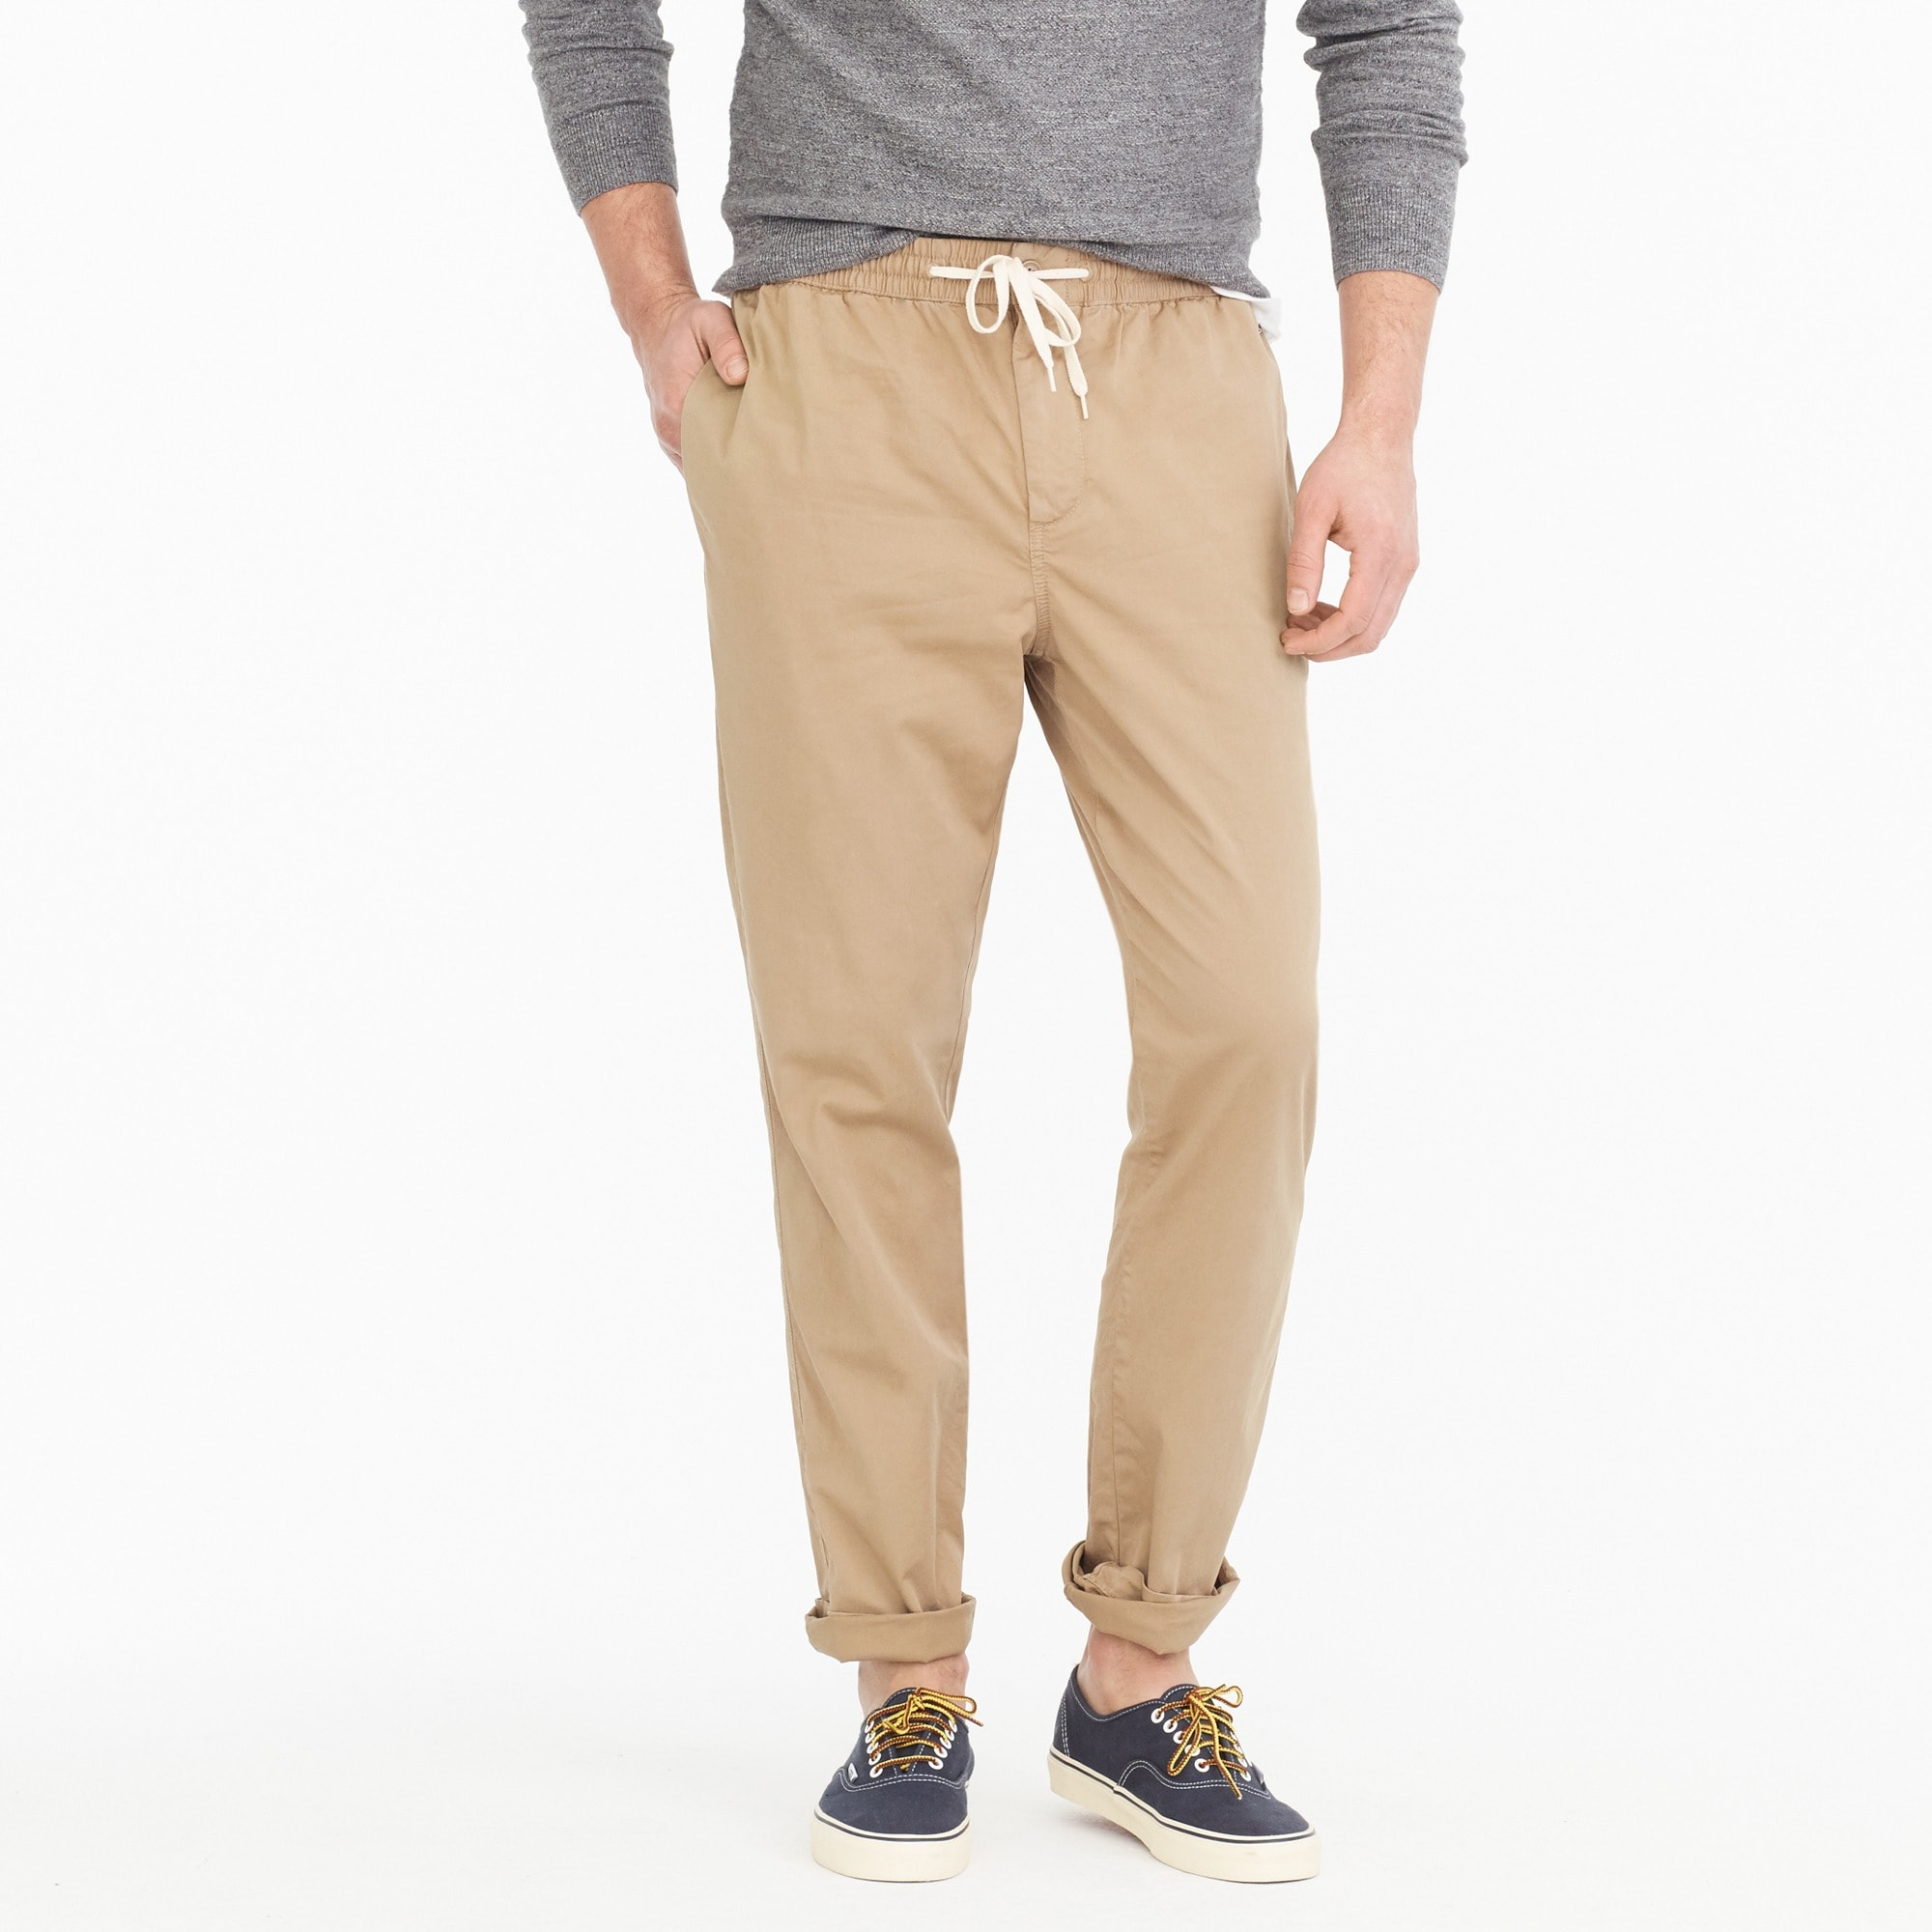 Image 1 for Drawstring pant in chino